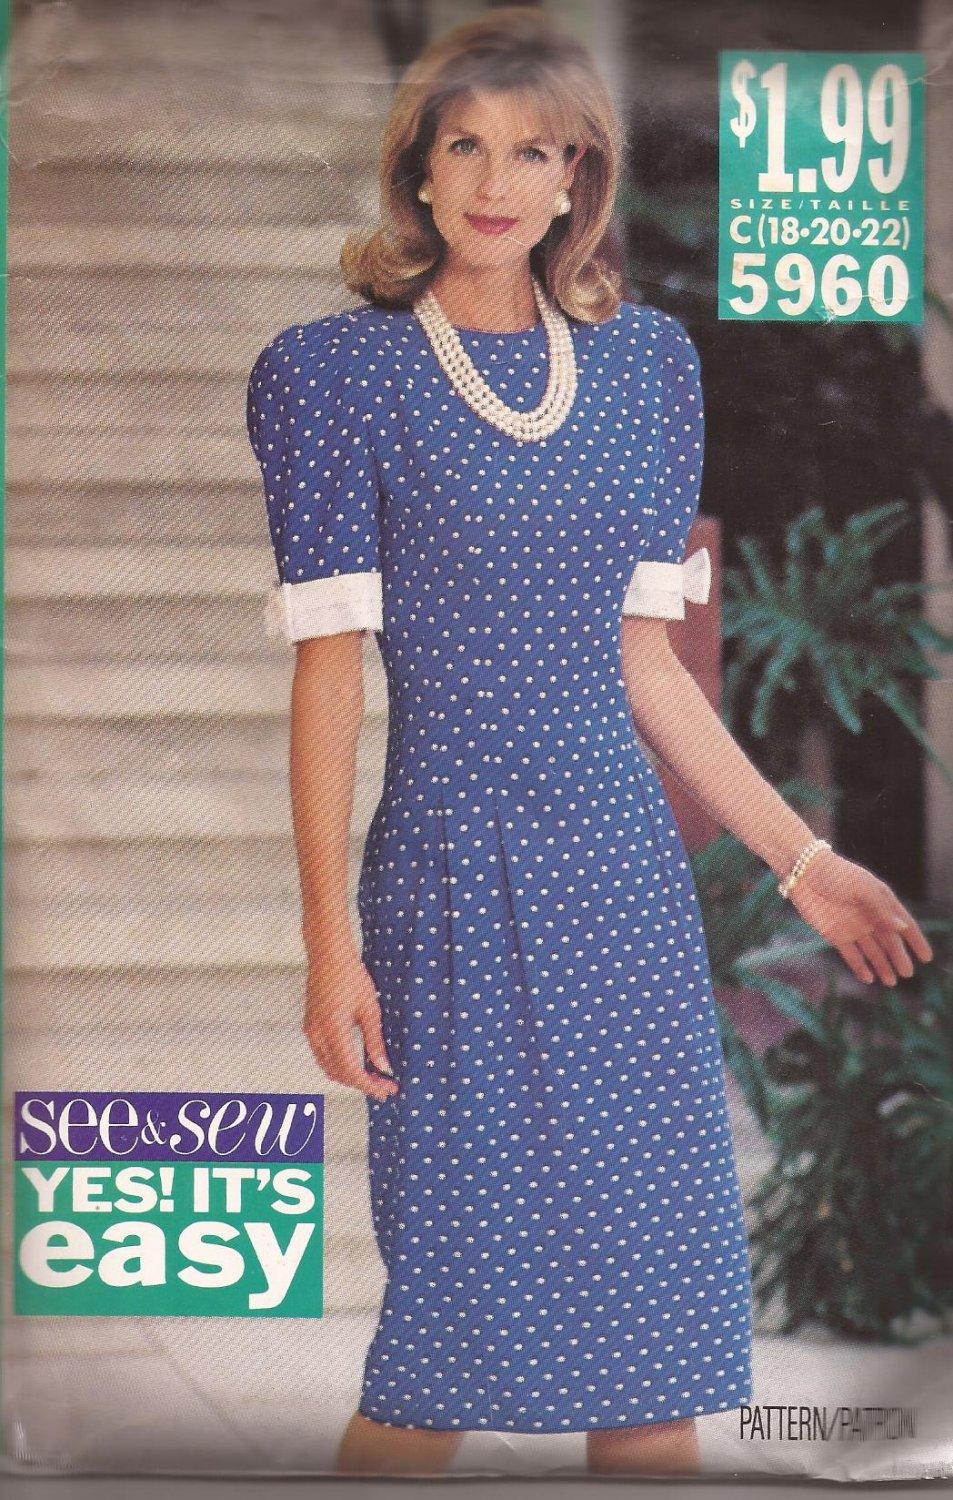 Butterick 5960 (1992) Fitted Waist Dress Sleeves with Contrast Bands Pattern Size 18 20 22 UNCUT